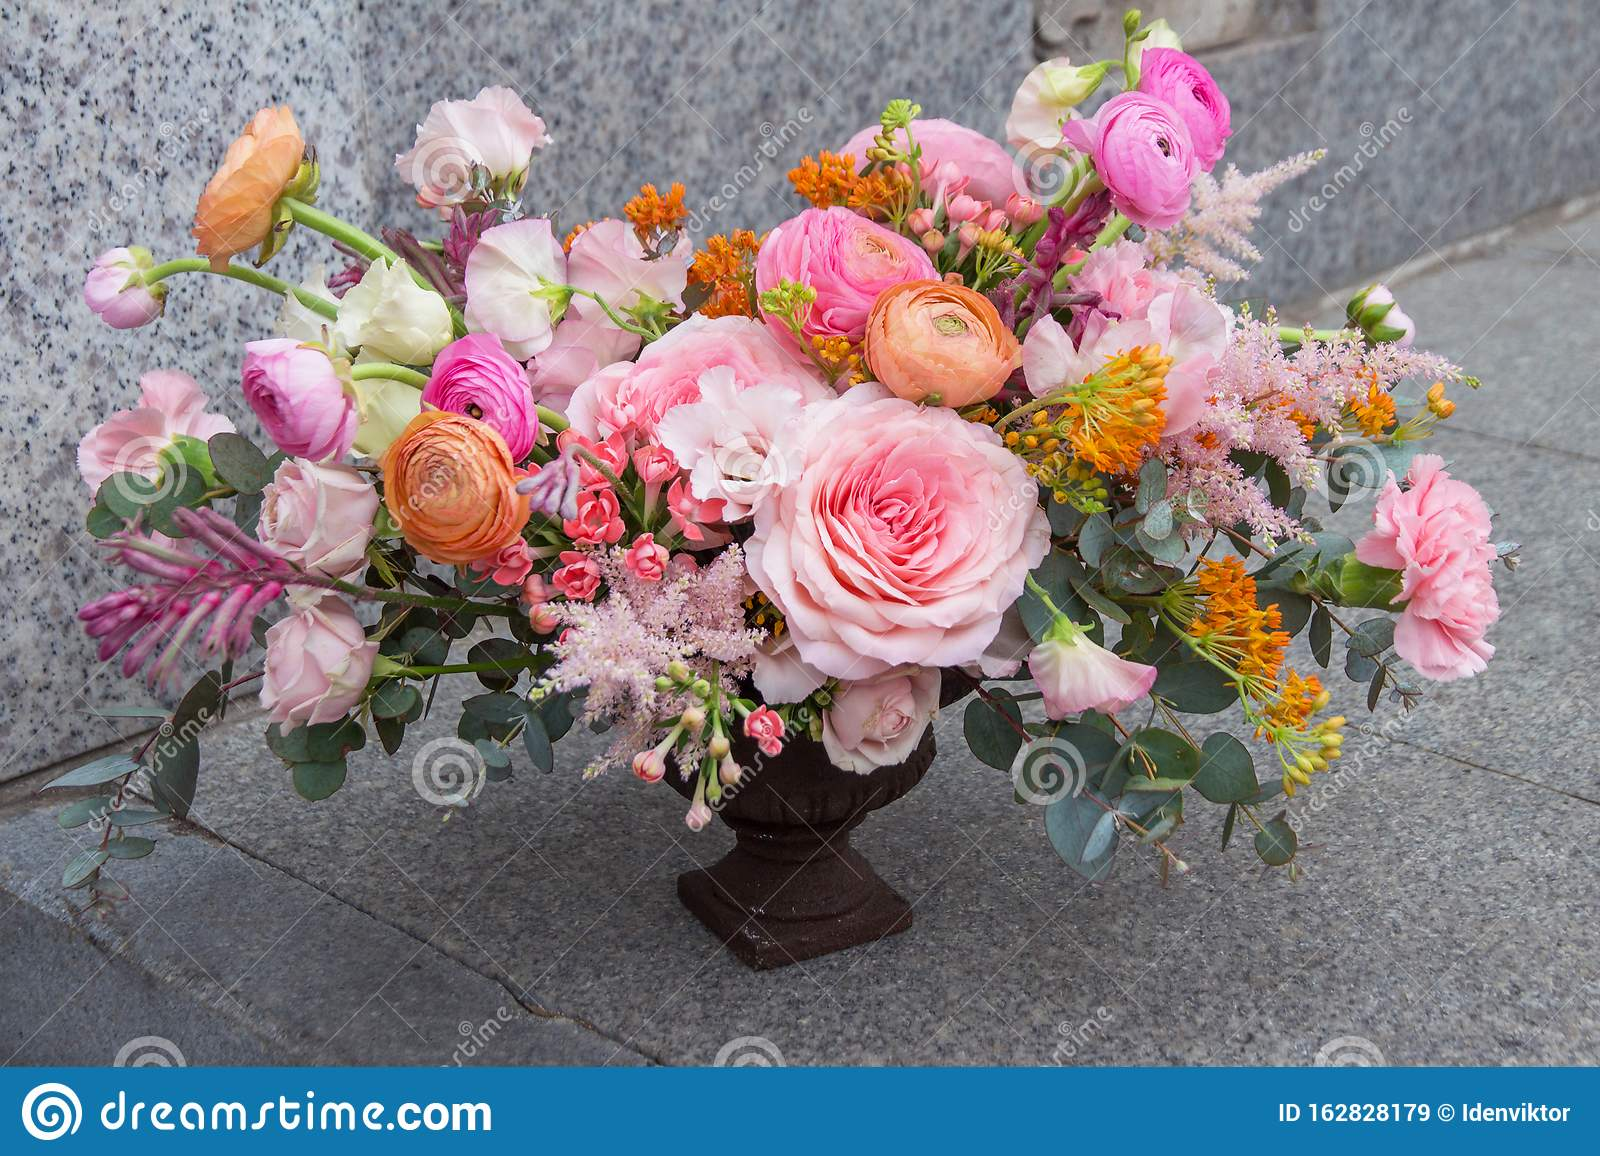 Wedding Designer Red Pink Orange Bouquet Of Florist With Different Flowers Peony And Roses Stock Image Image Of Copy Peony 162828179